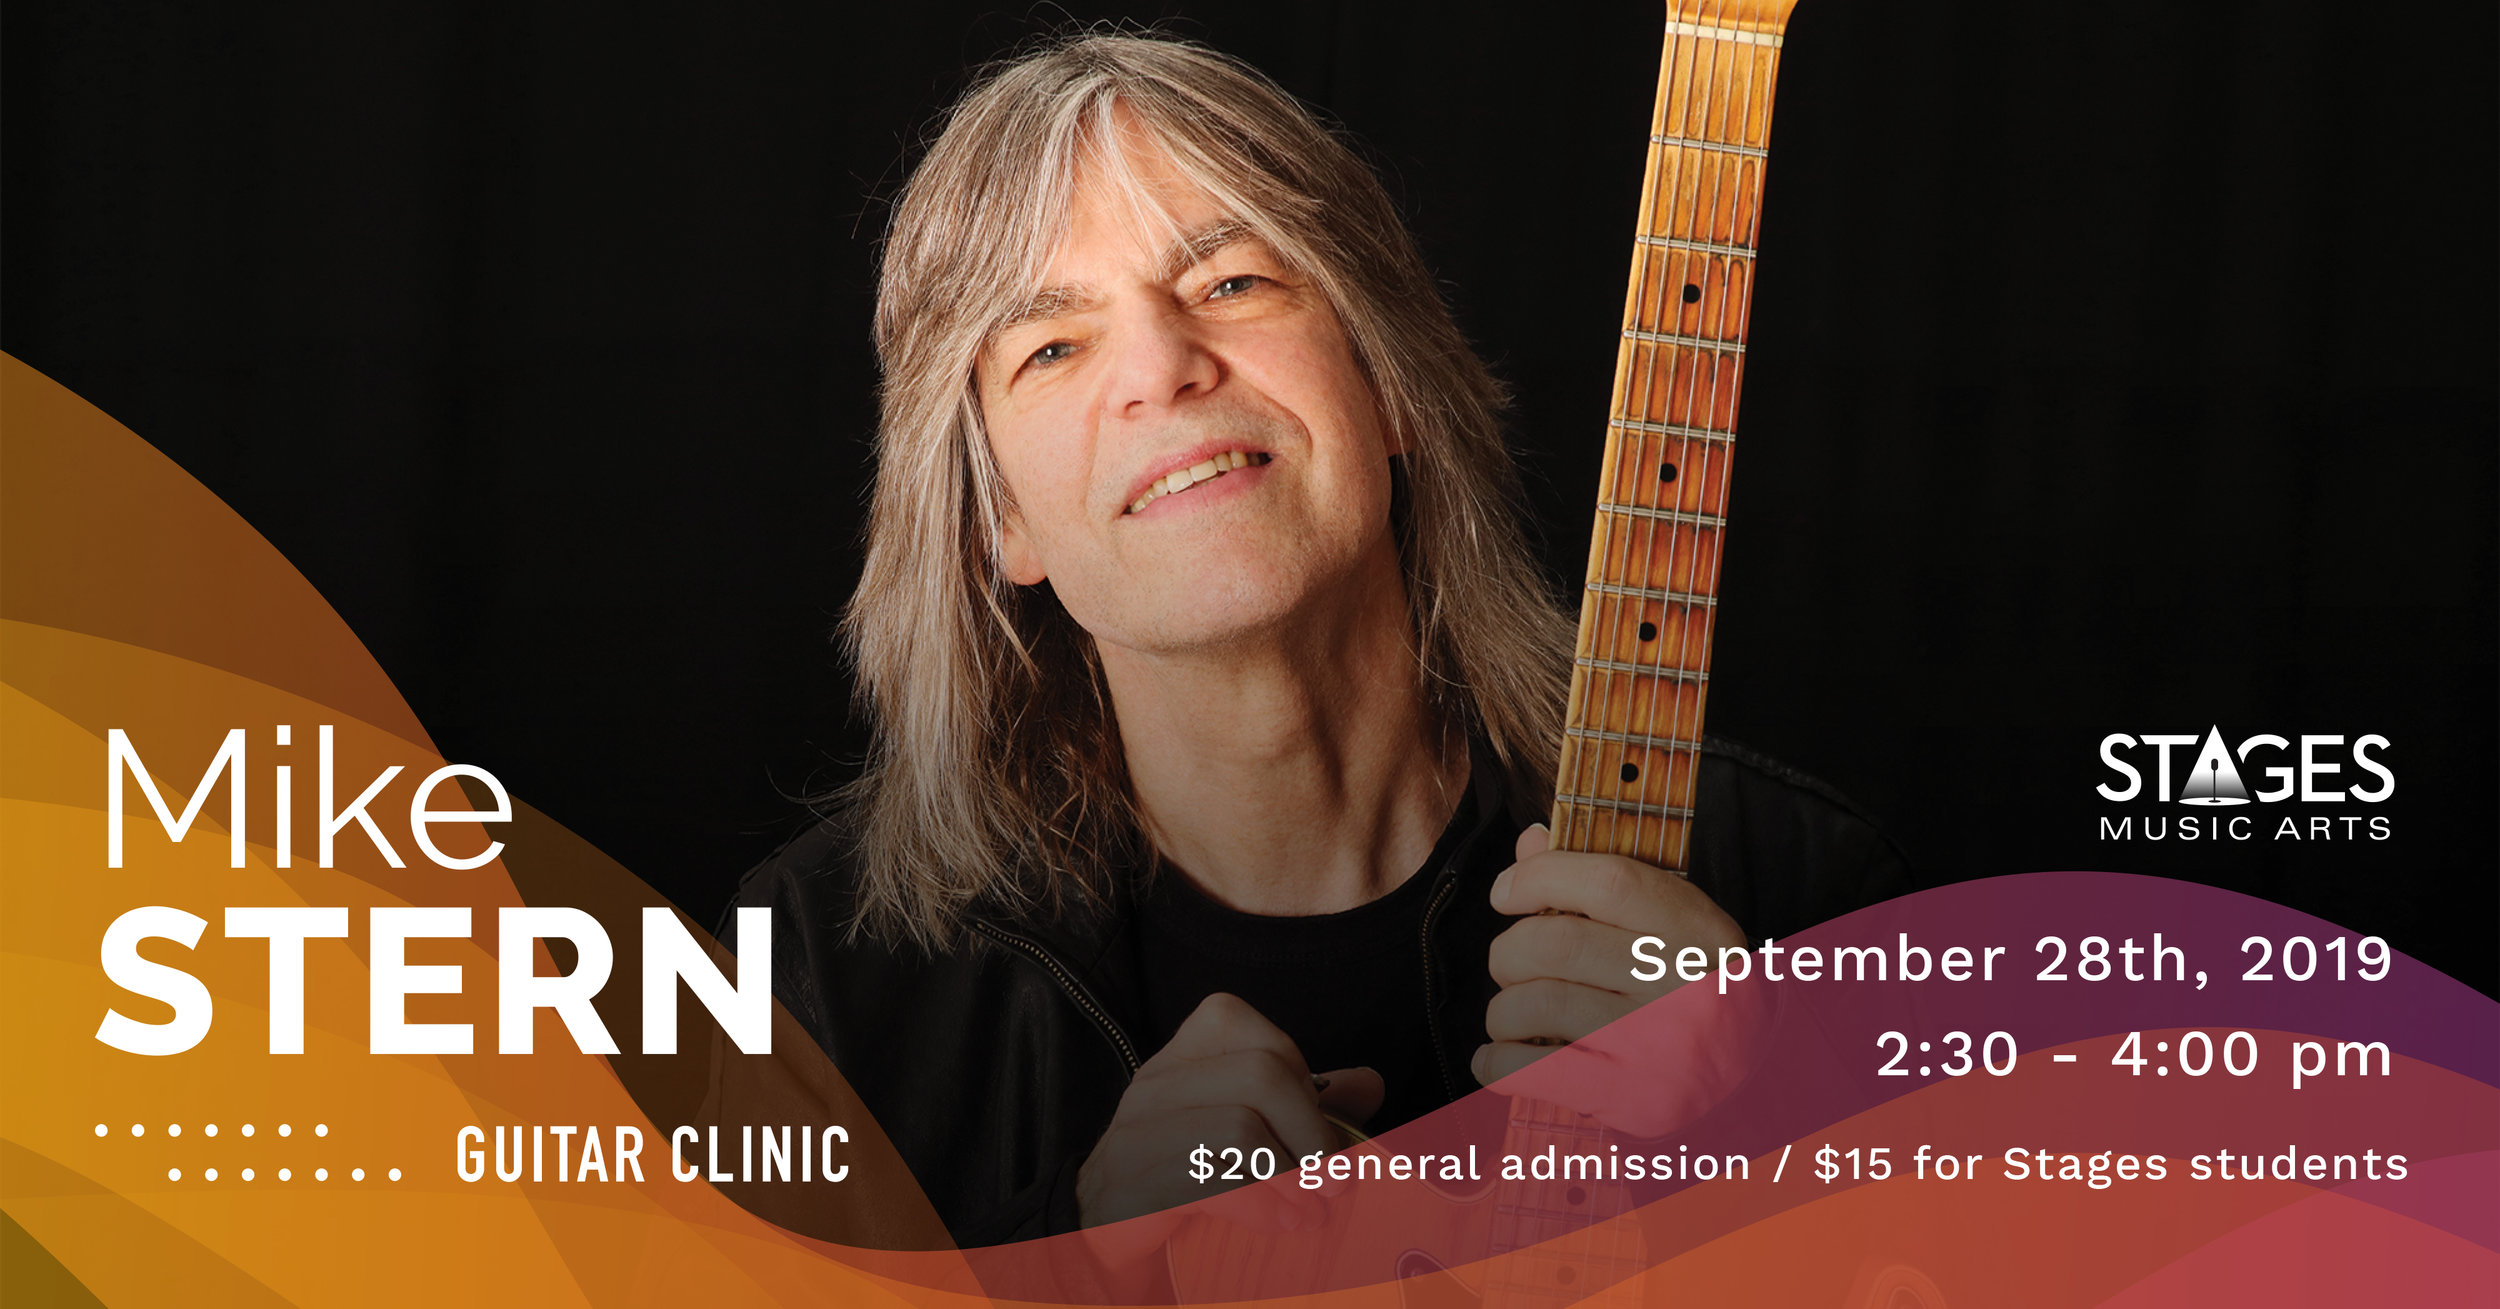 Mike Stern Guitar Clinic - Saturday, September 28th2:30PM – 4:00PMStages Music Arts (map)$20, $15 for Stages students